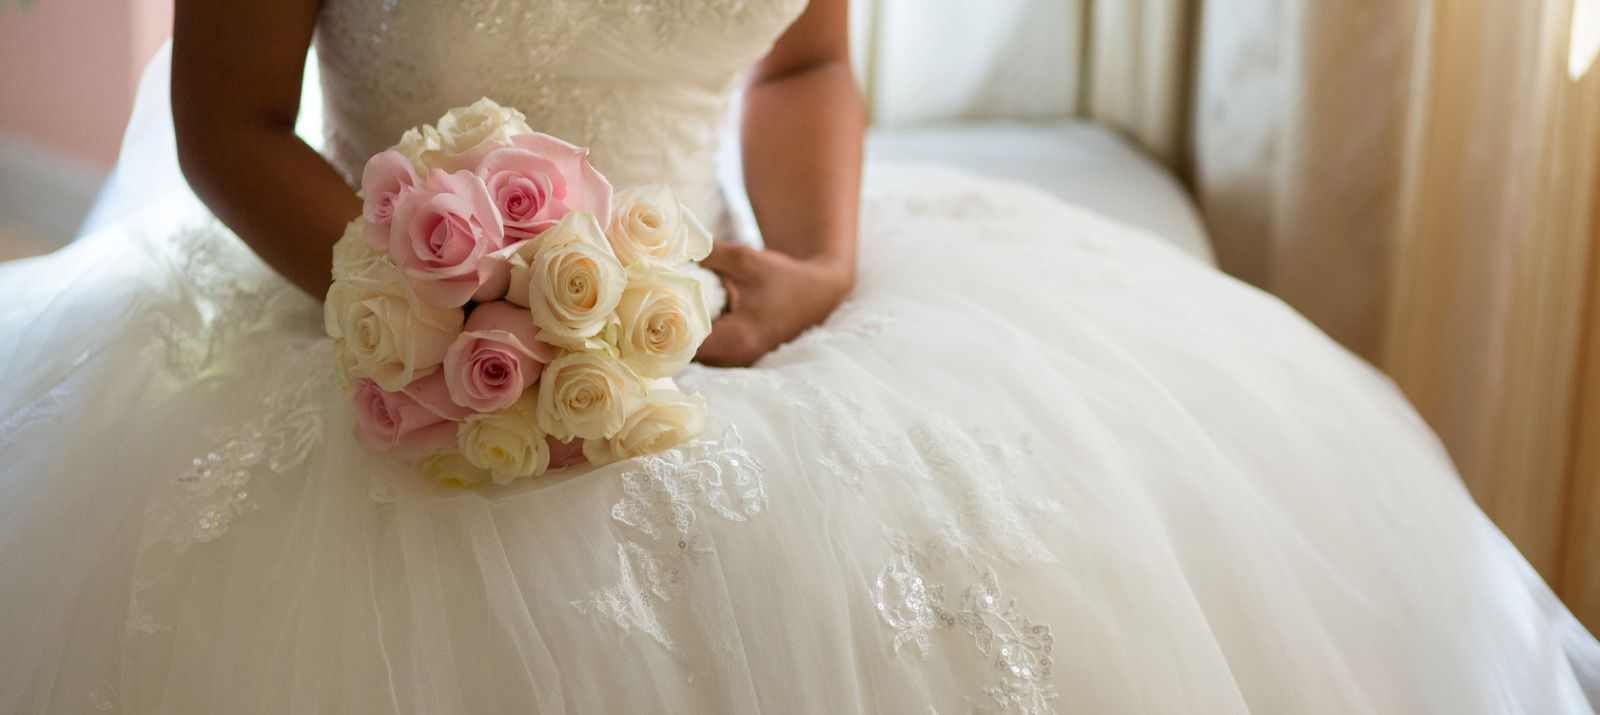 How Much Is Wedding Dress Dry Cleaning Wedding Dress Preservation Clean Wedding Dress Wedding Gown Cleaning